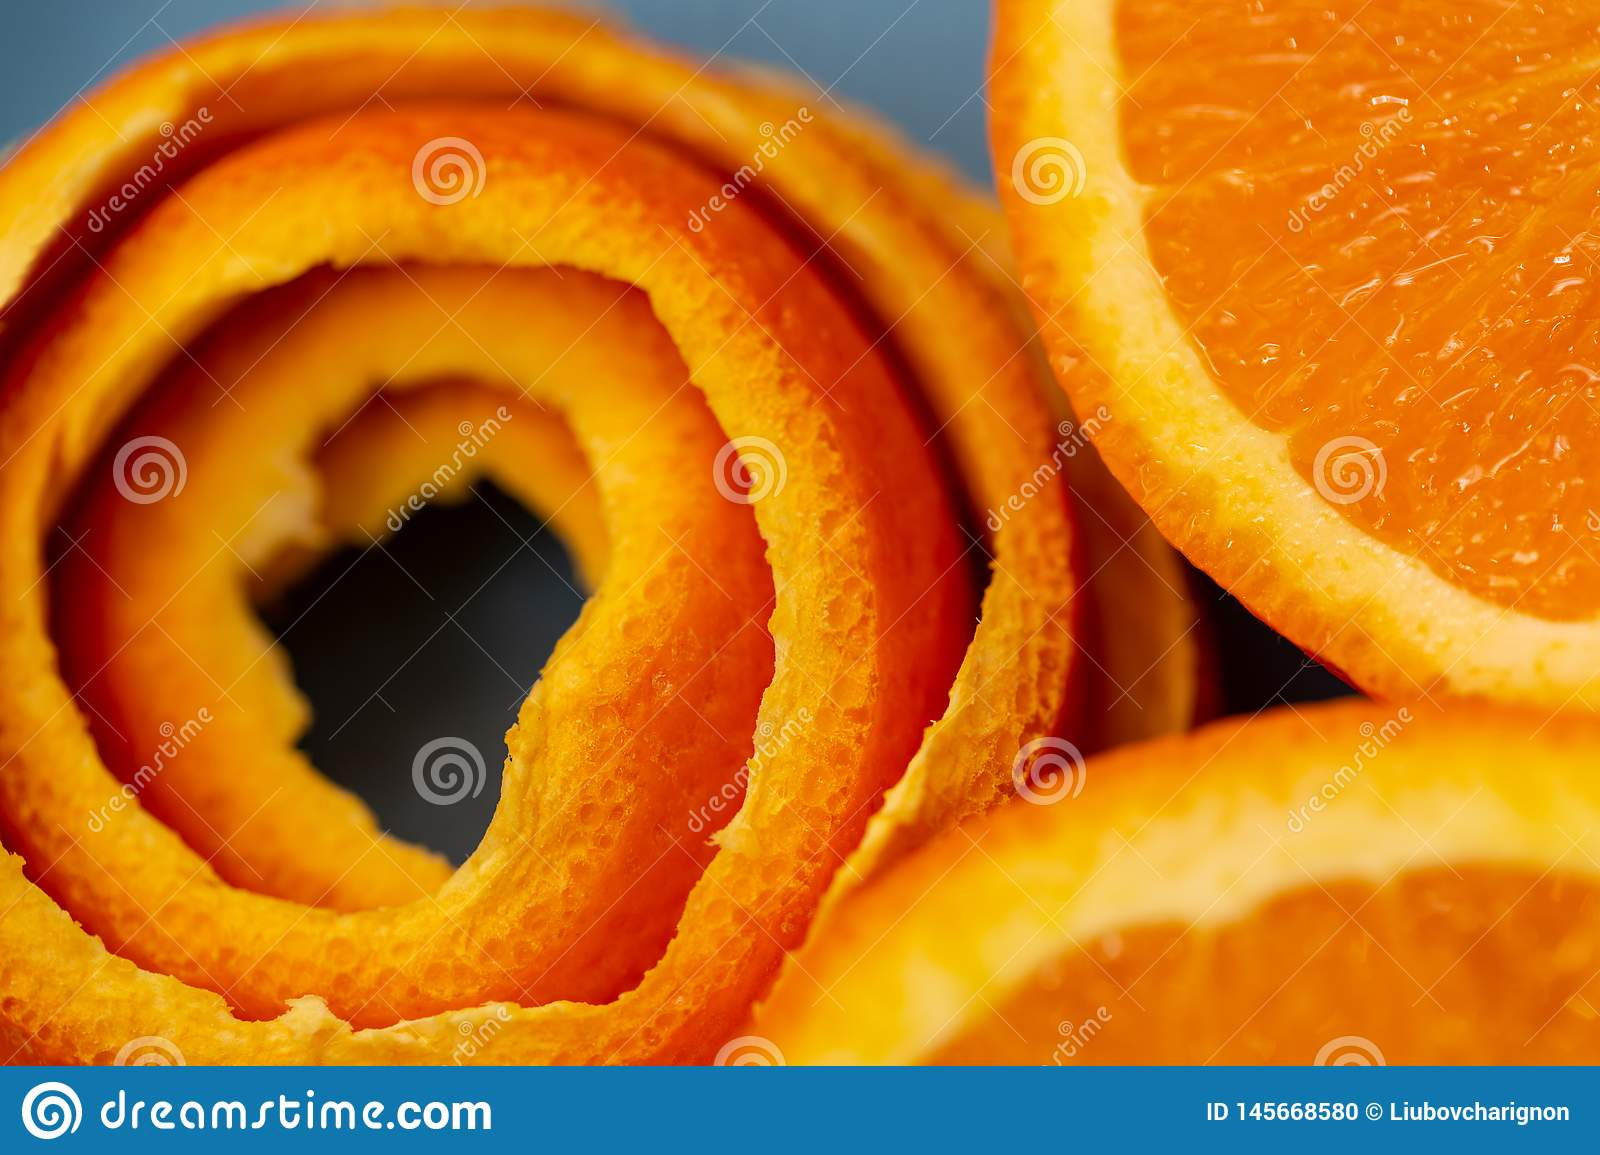 Background with fruits citrus an orange and a peel or pieces of tangerine. Macro image